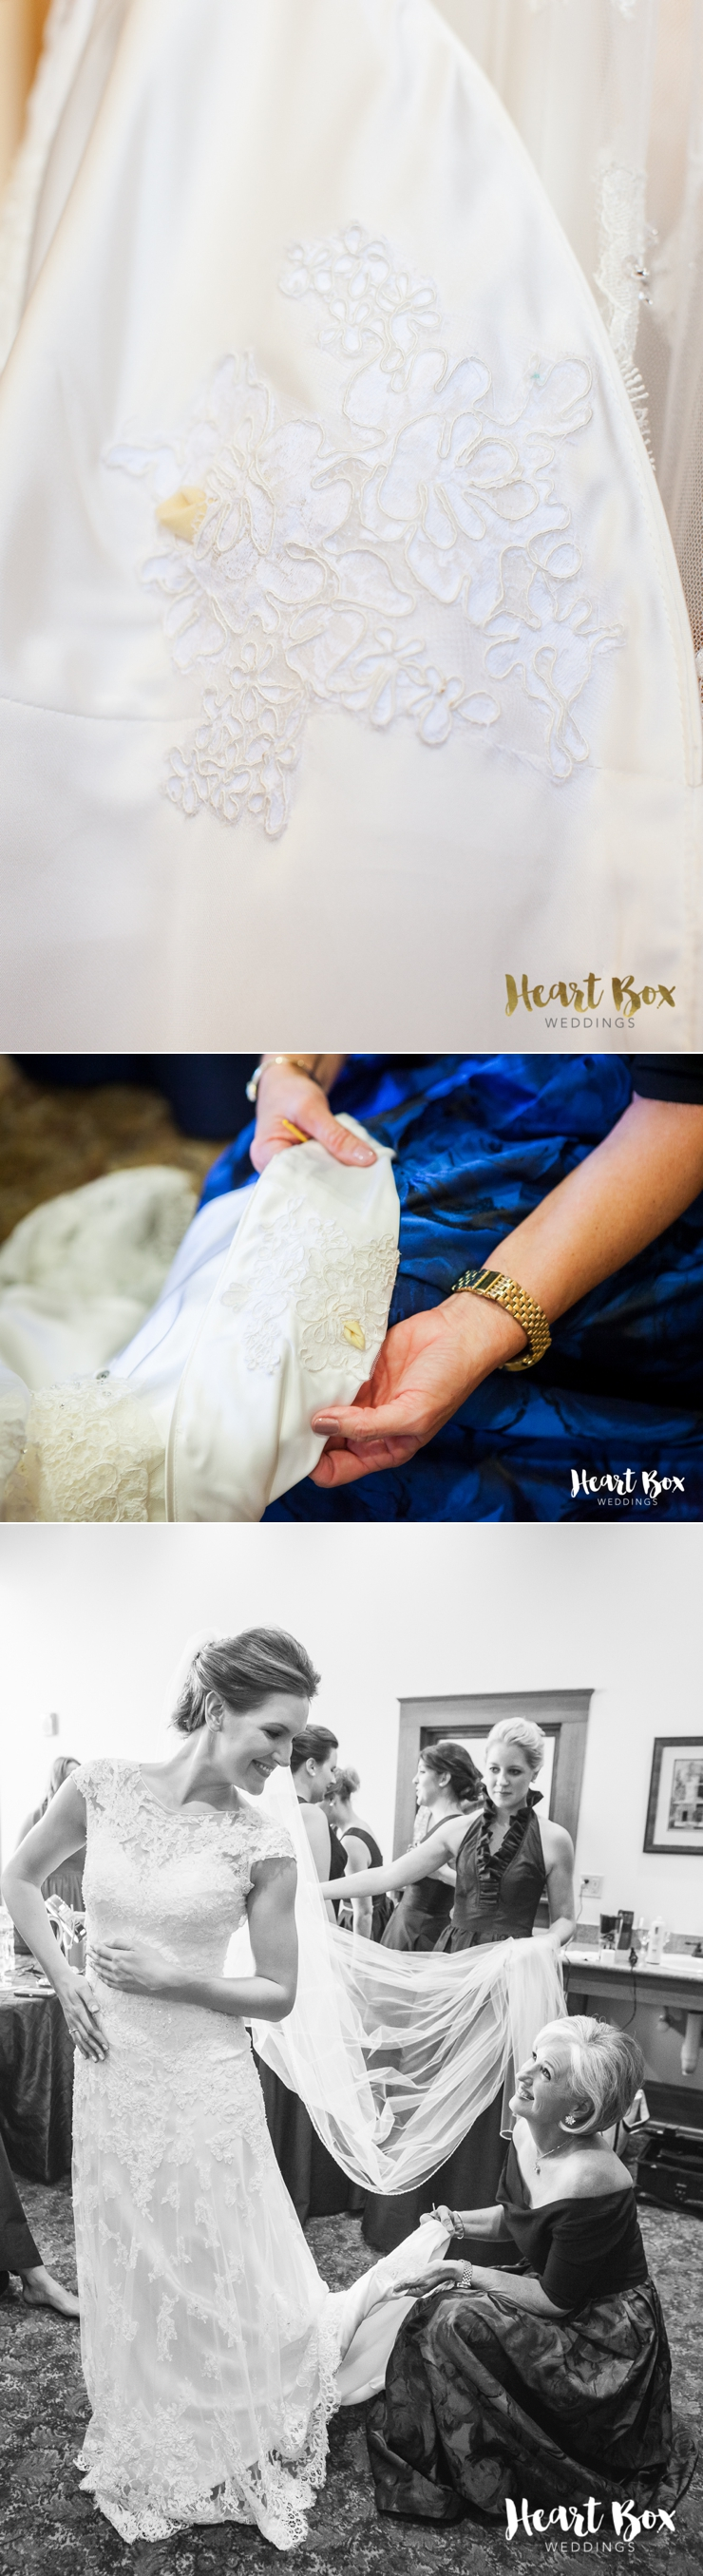 Mary Styrsky Bridal Collages 7.jpg